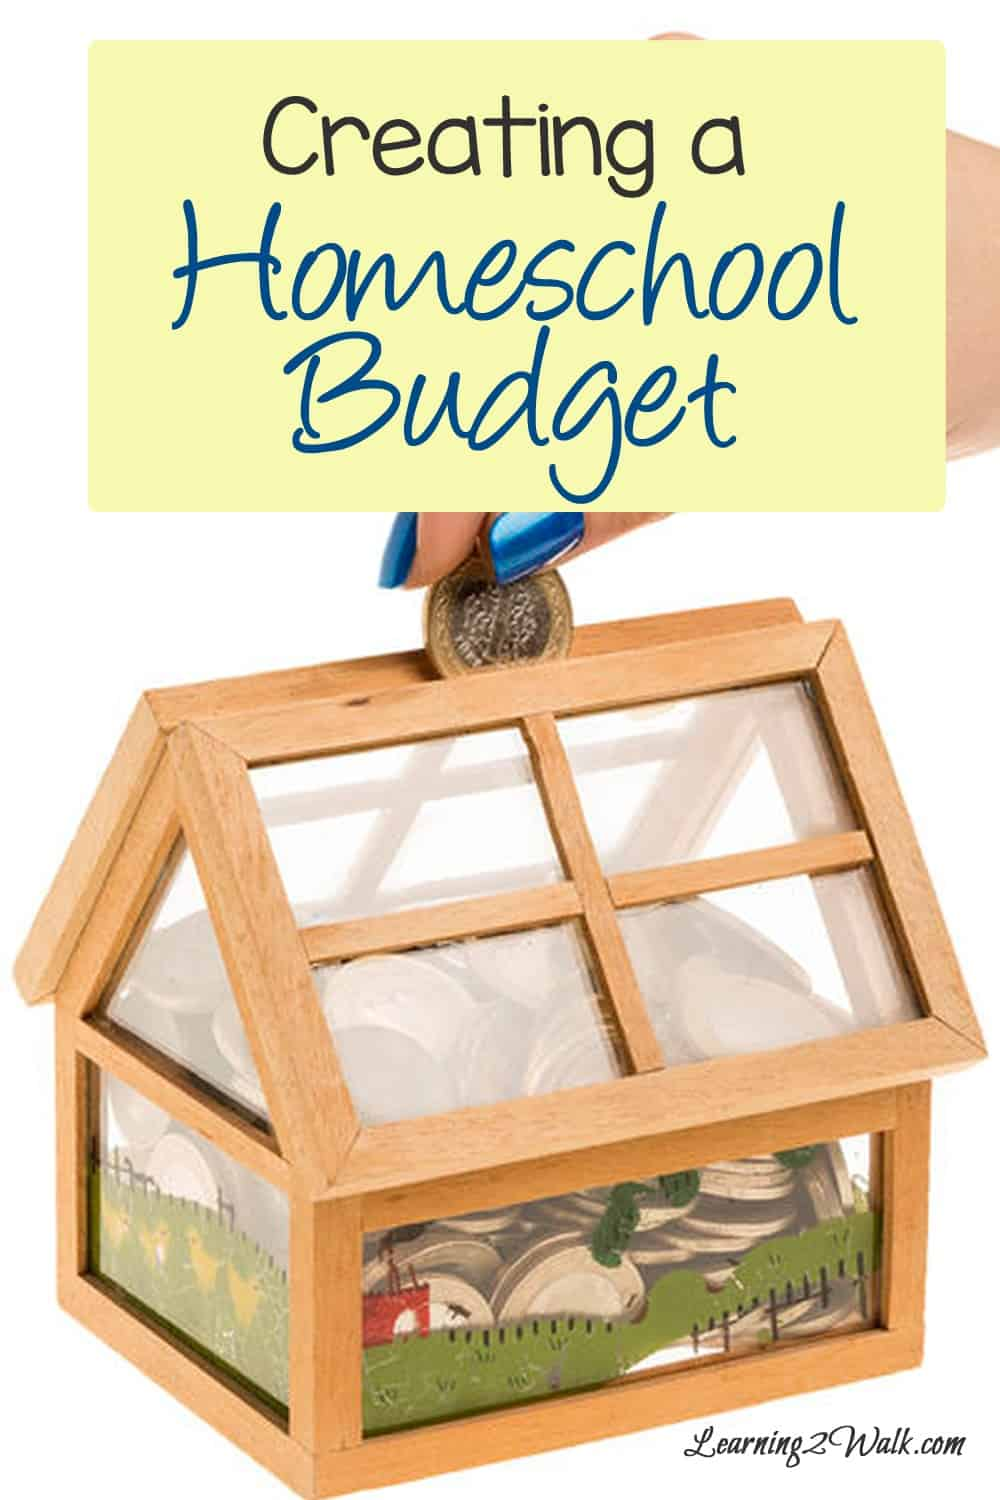 Does your homeschool have a budget? If not, try these tips to get you where both you and your wallet will be at peace.